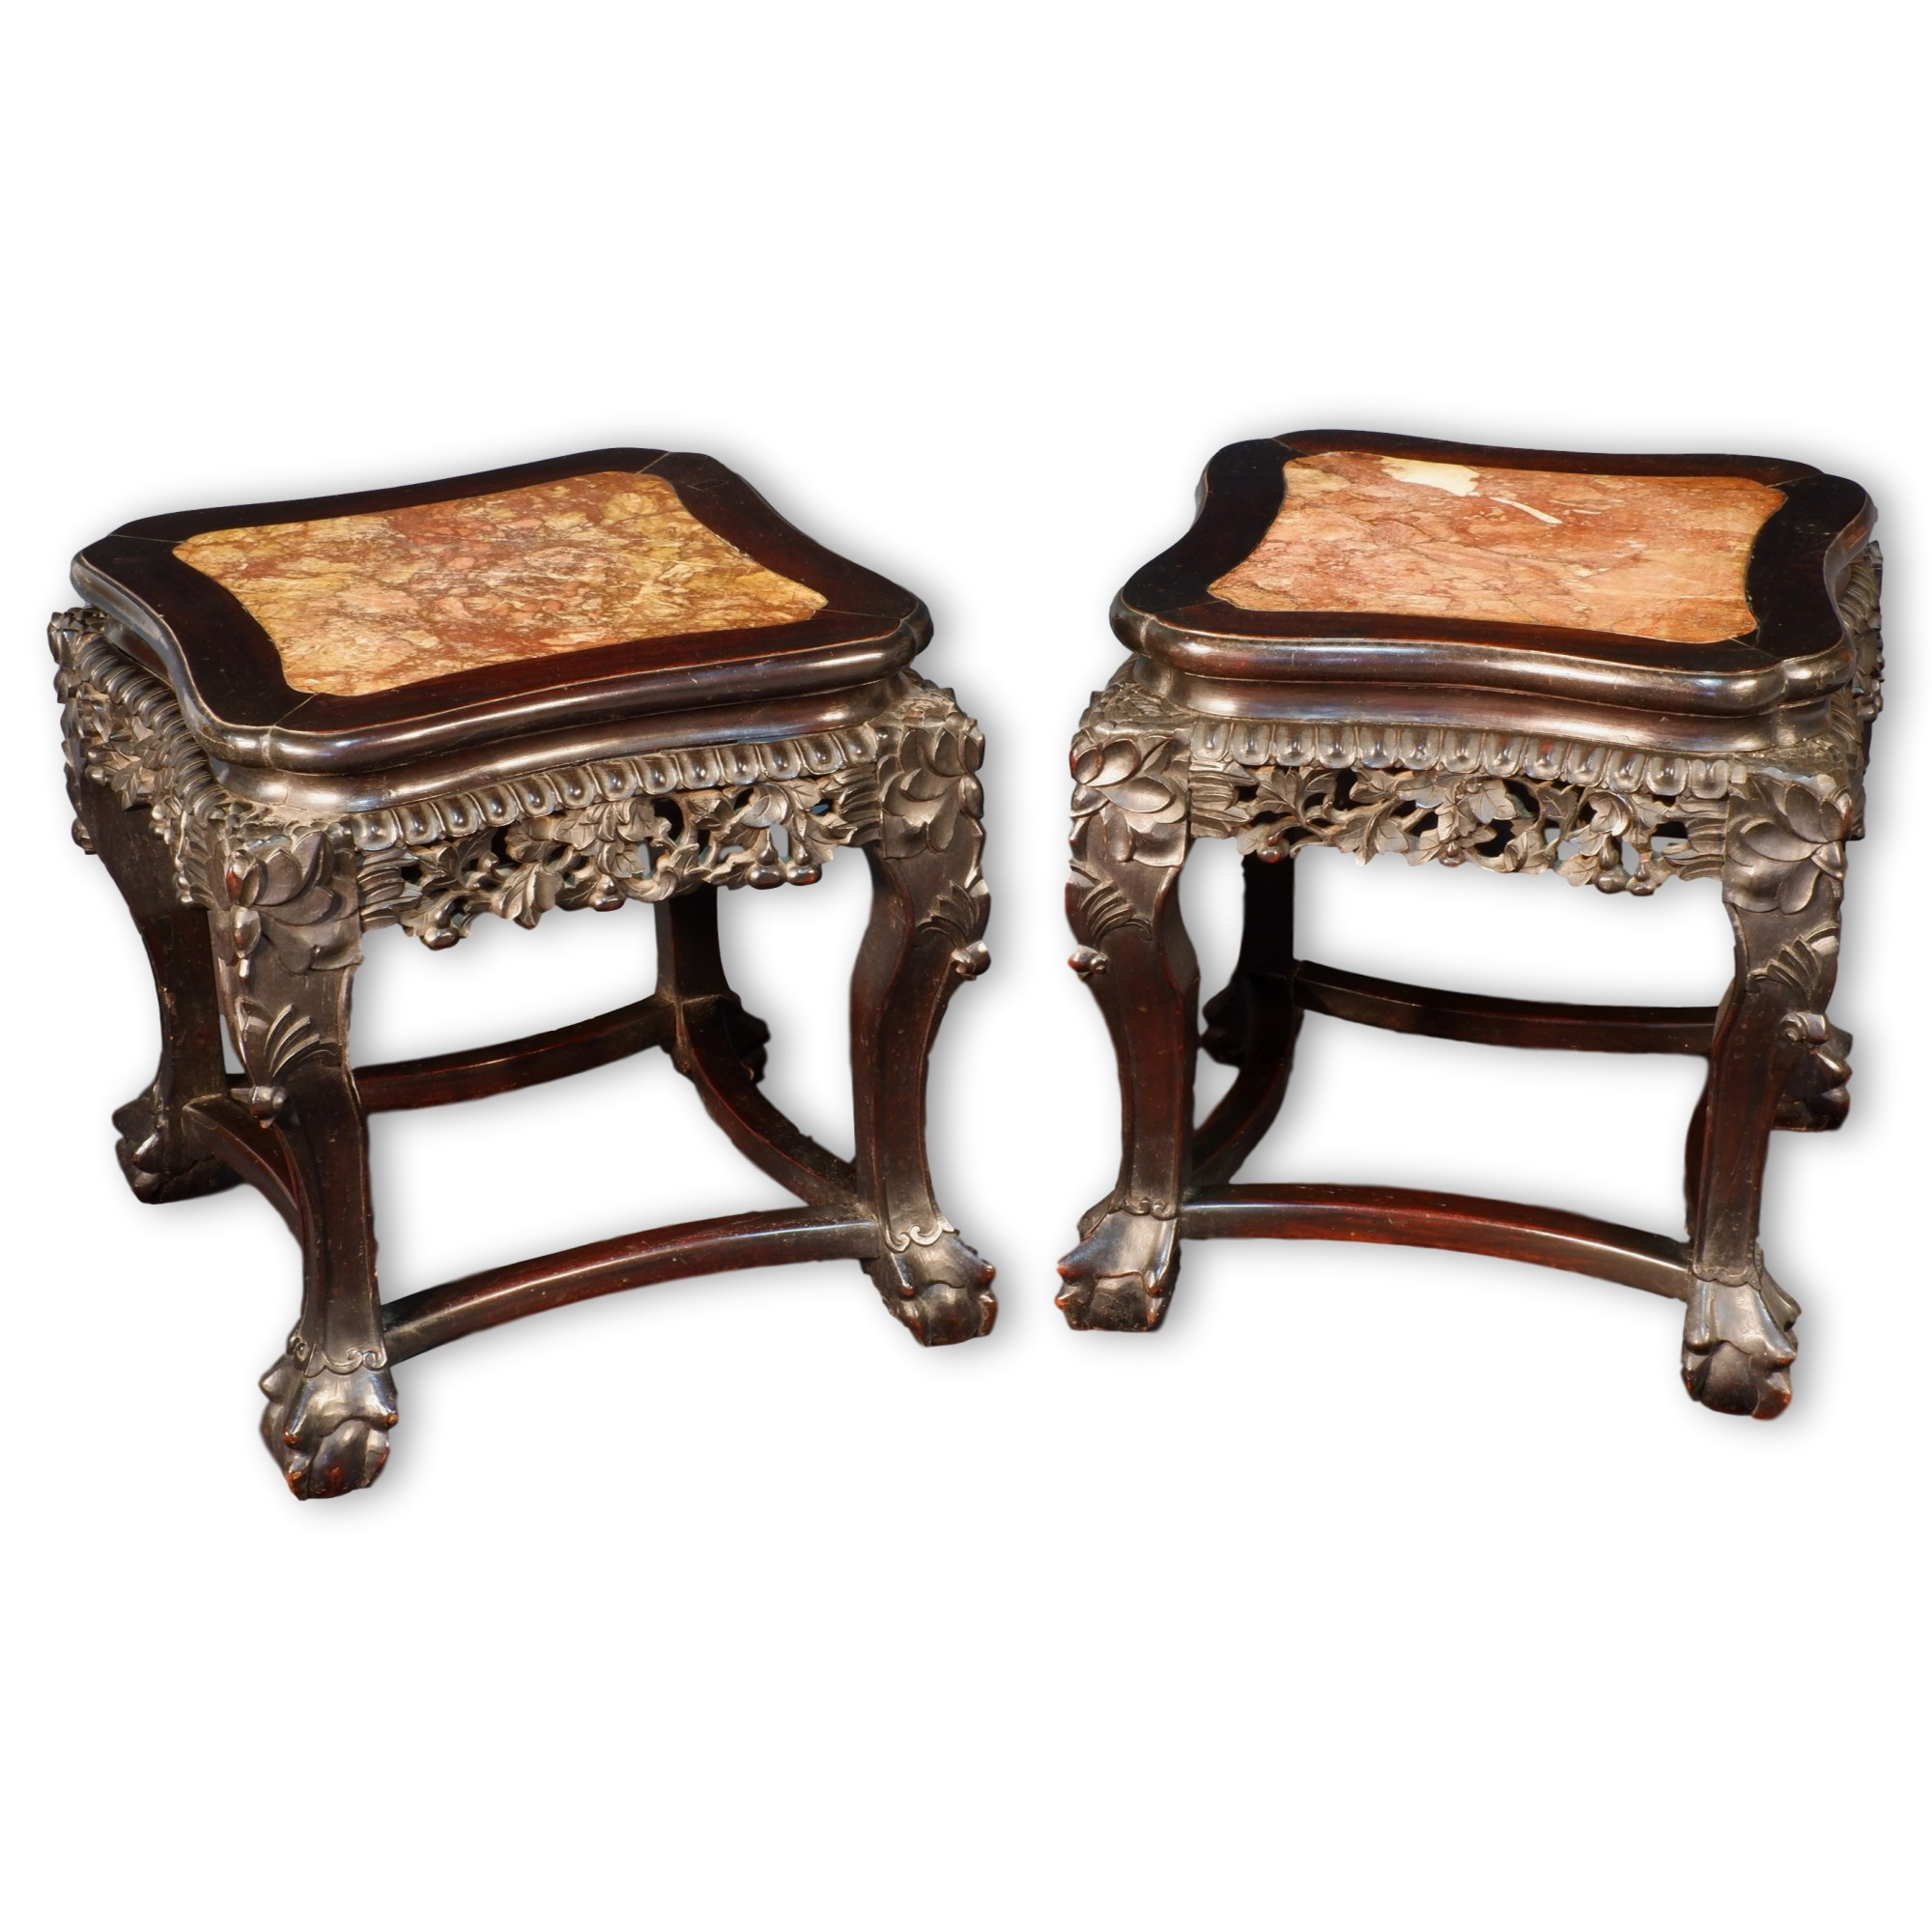 'Pair of Antique Chinese Export Carved and Stained Hongmu and Marble Inset Low Tables, Late 19th to Early 20th Century'